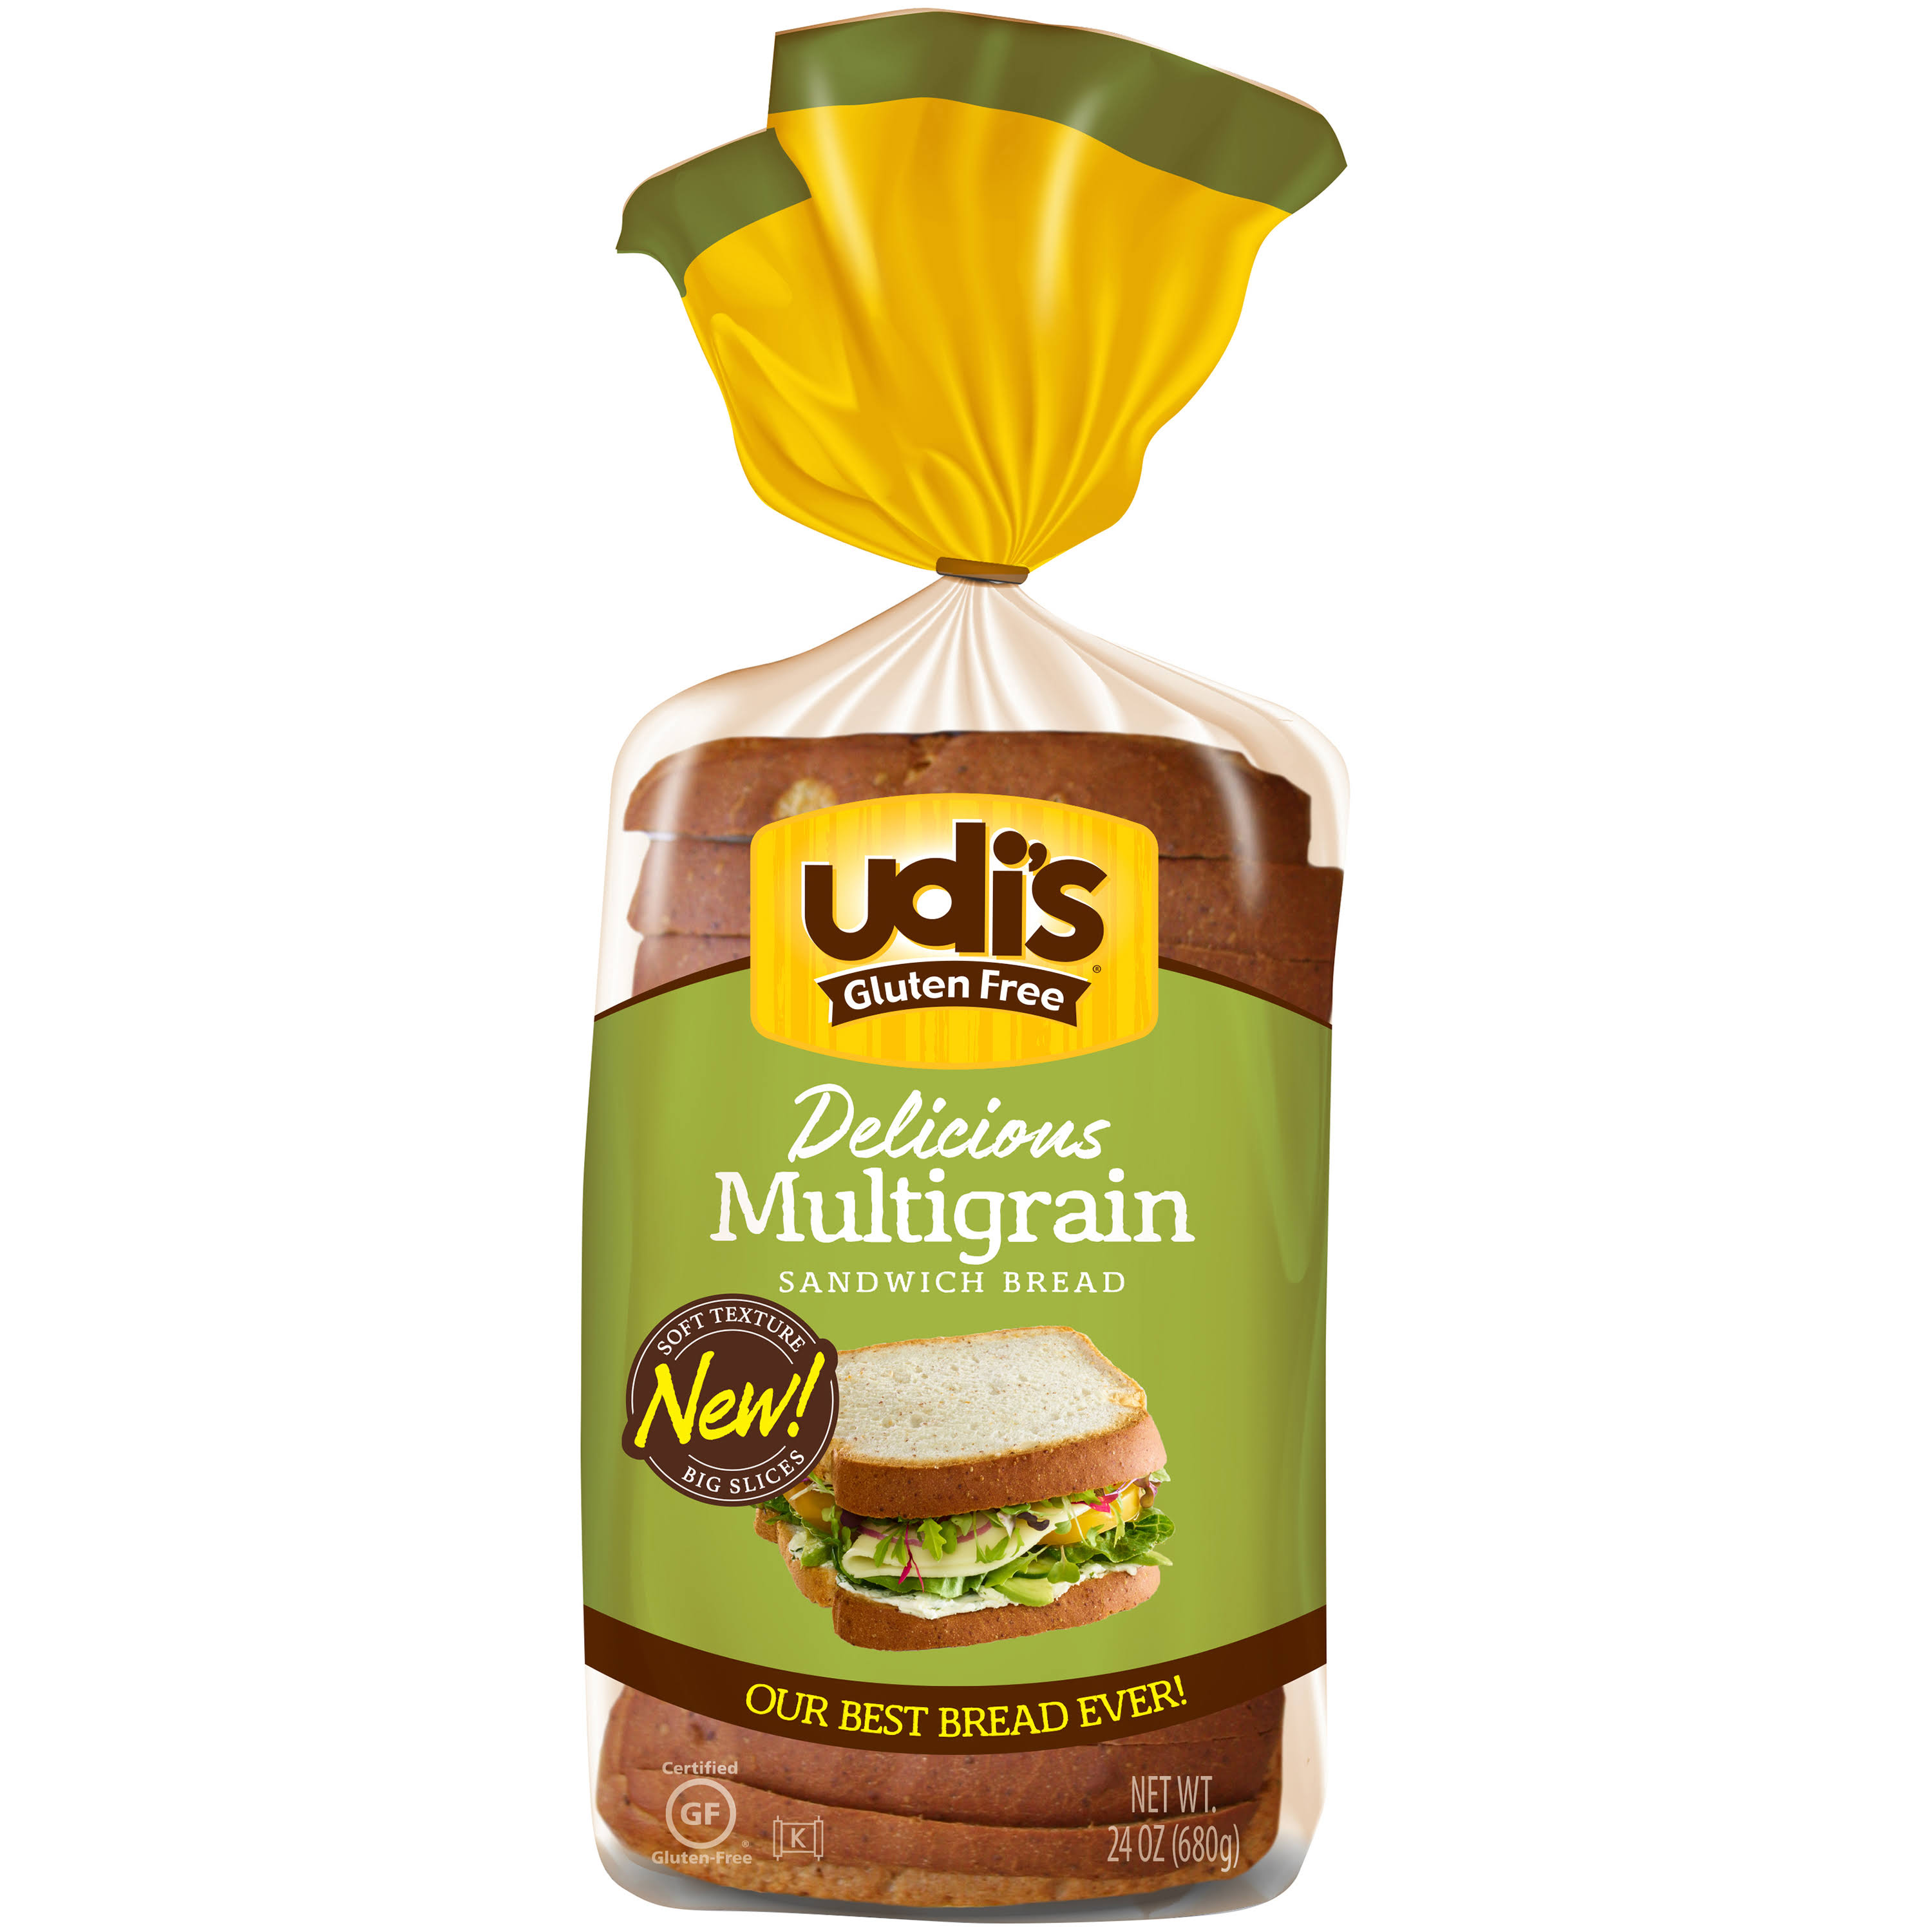 Udi's Gluten Free Bread - Whole Grain, 24oz